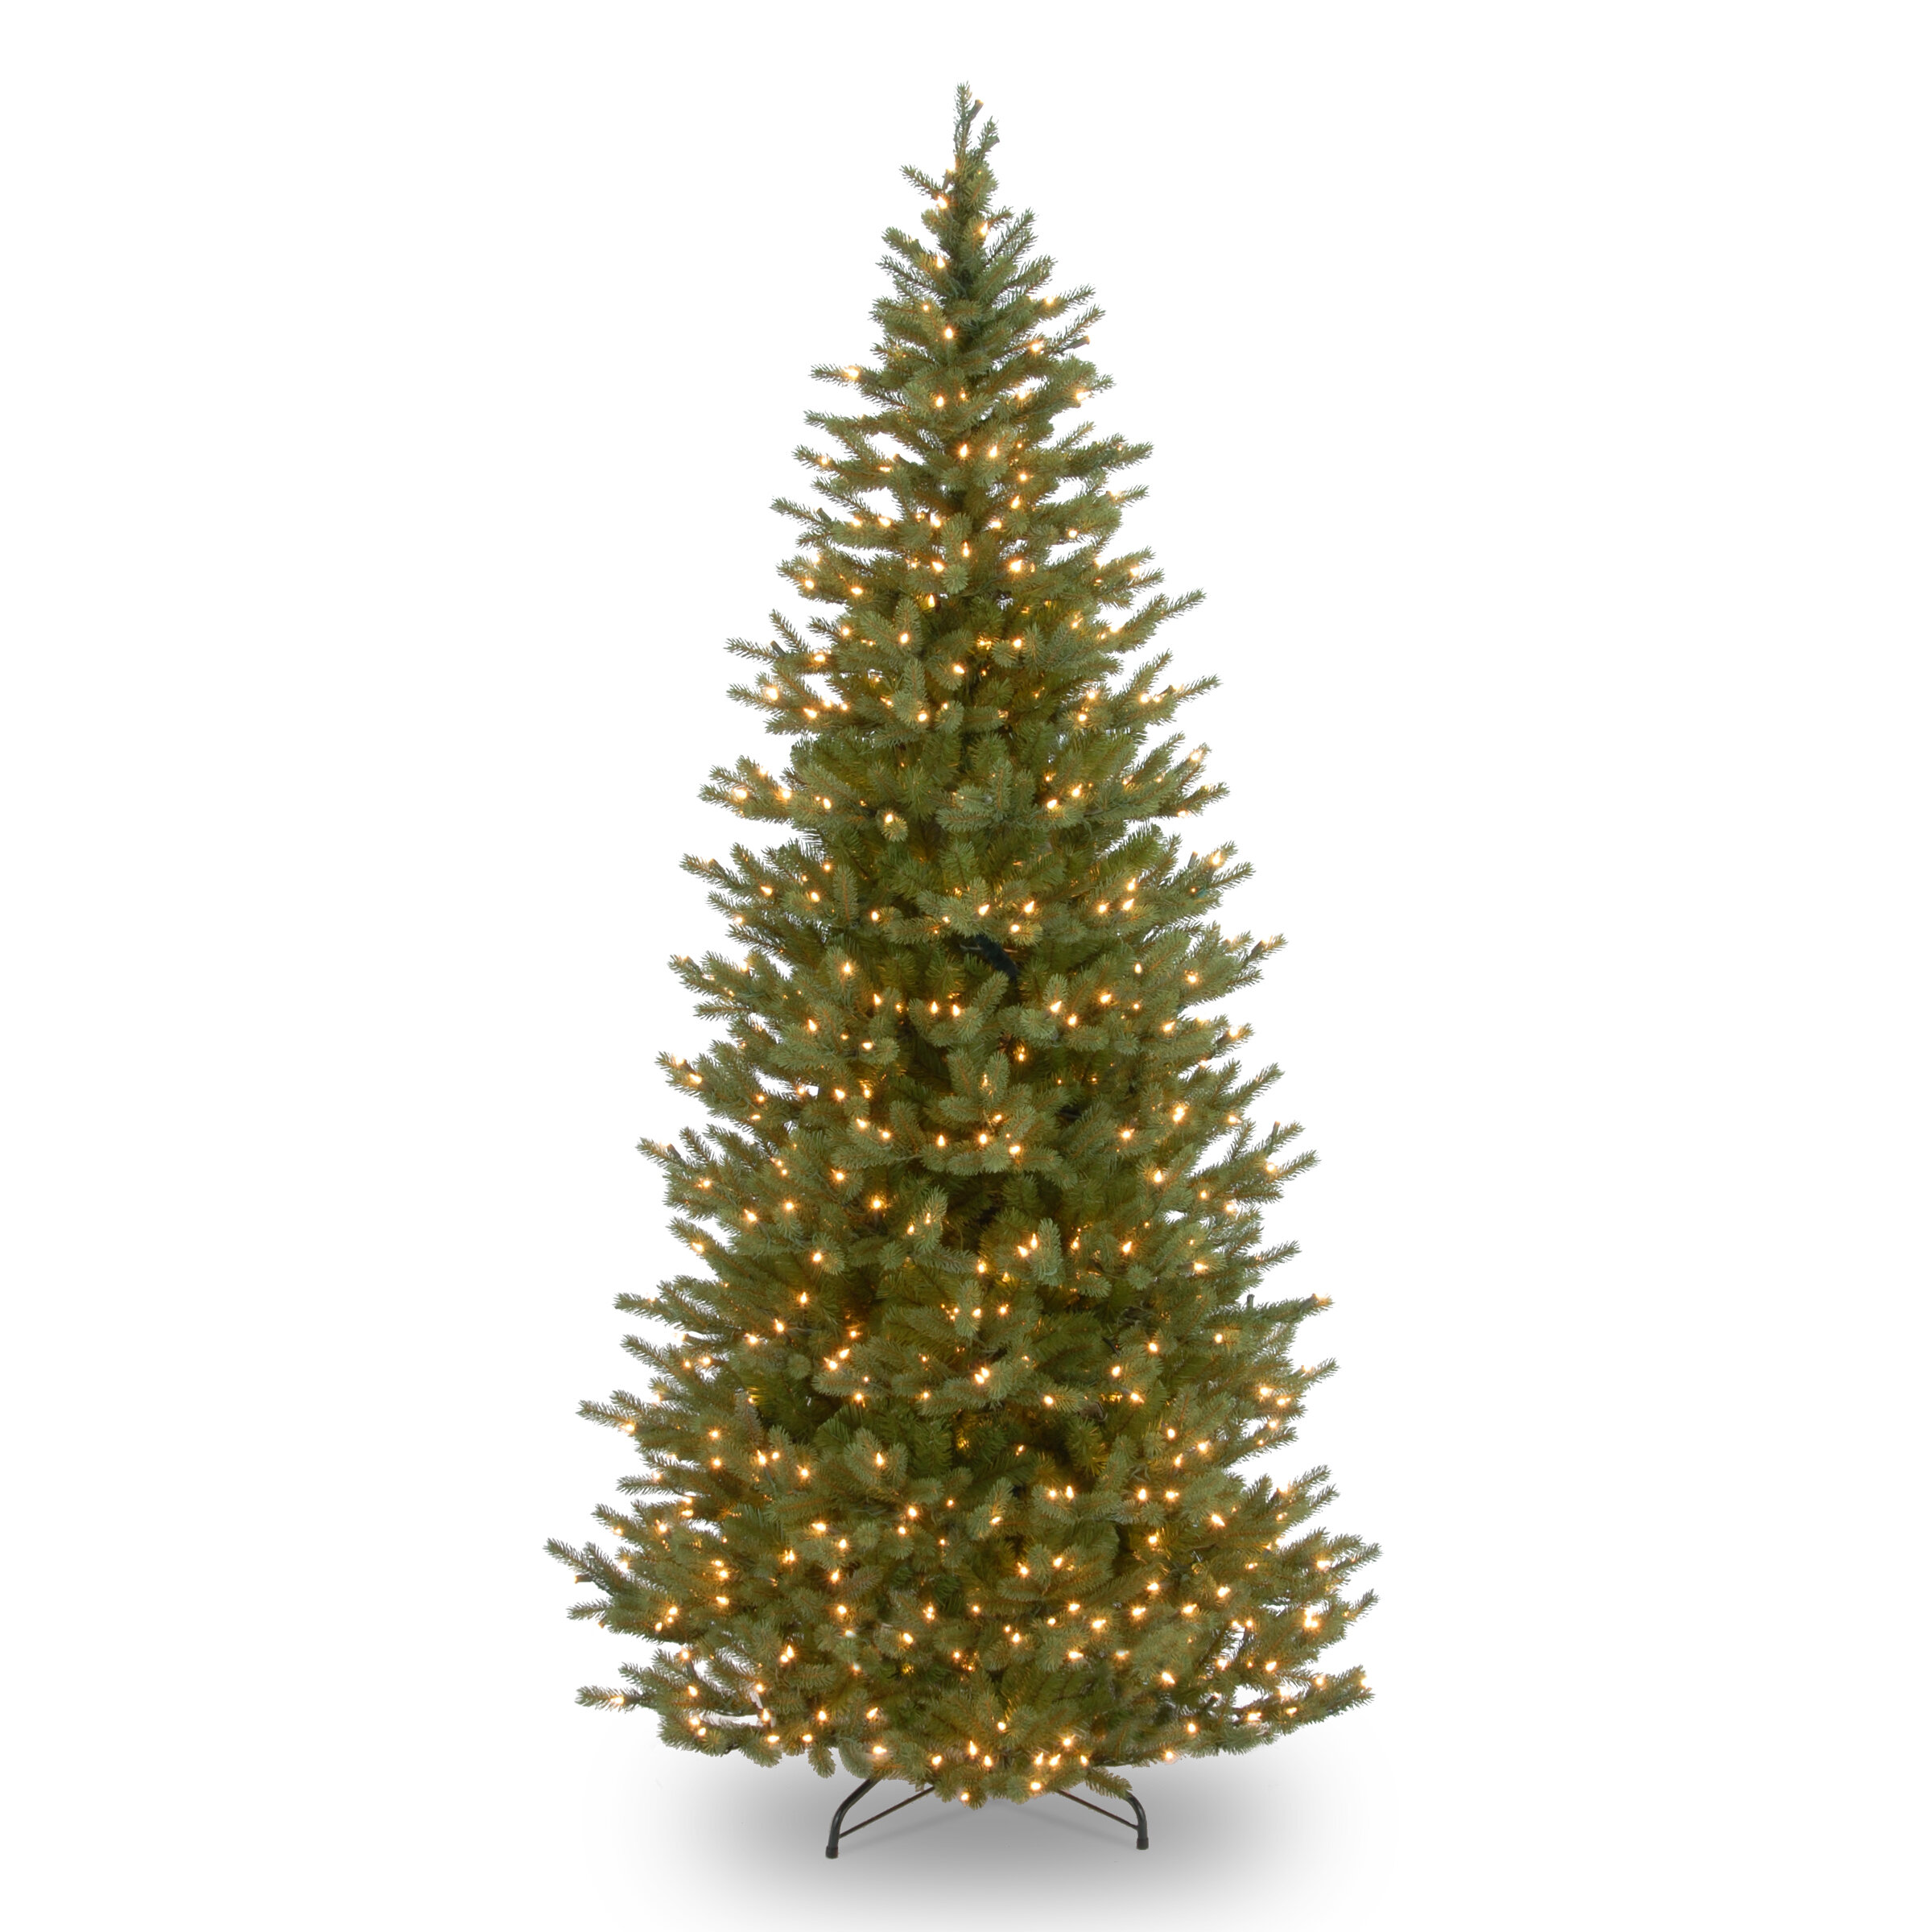 The Holiday Aisle Feel Real Norway Slim 7.5\' Green Spruce Trees ...